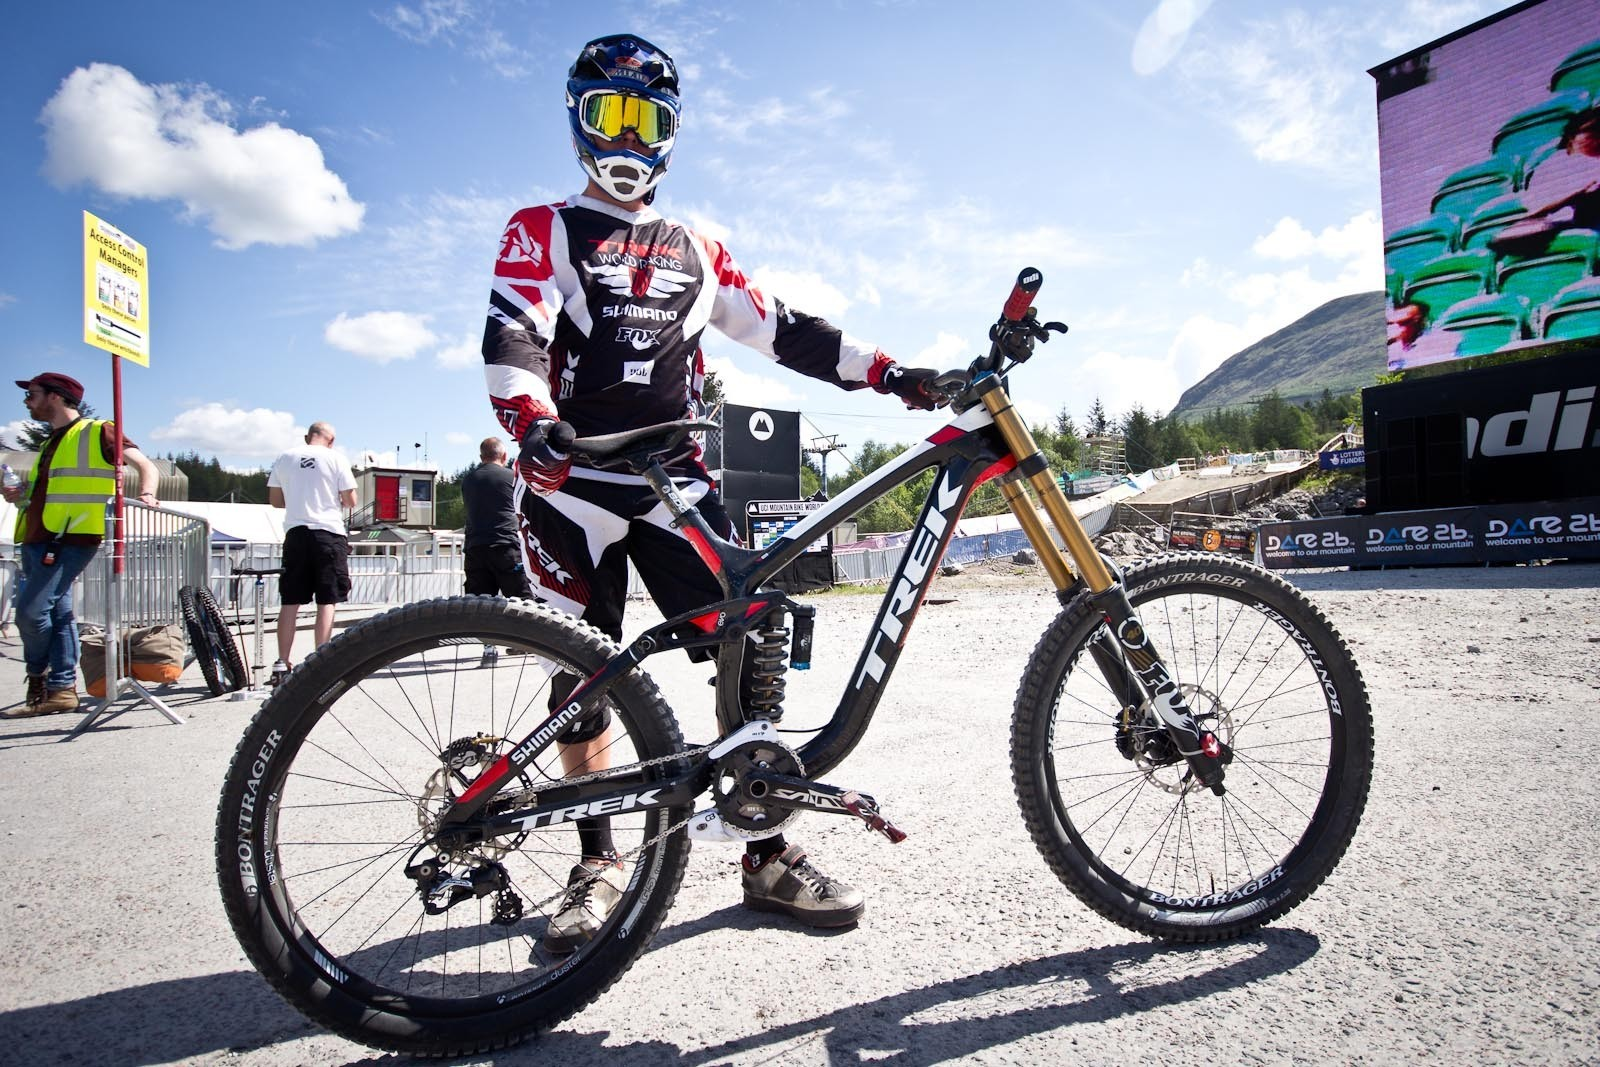 Neko Mulally's Trek Session 9 9 - 24 Pro DH BIkes from Fort William World Cup - Mountain Biking Pictures - Vital MTB